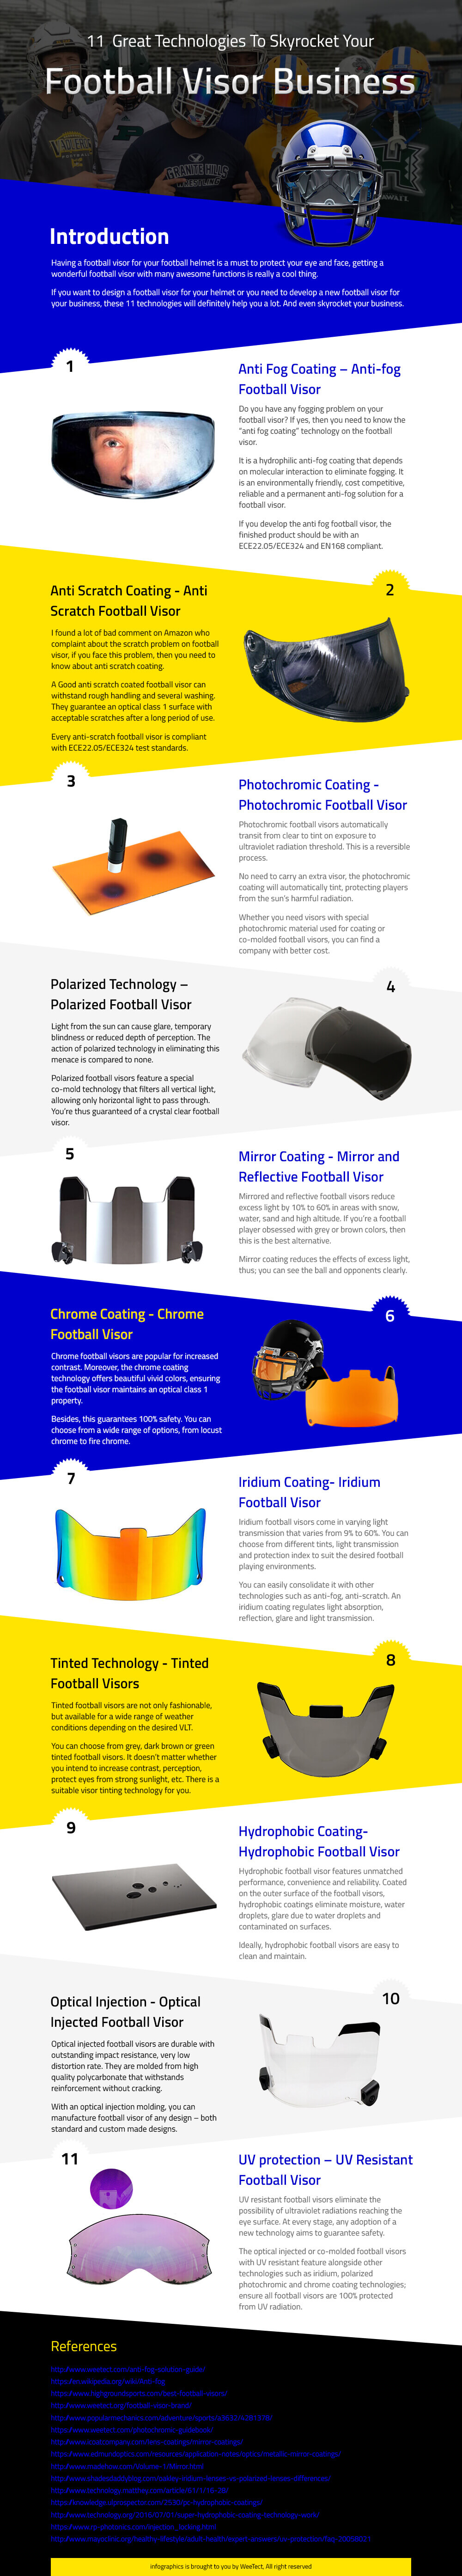 WeeTect Football visor infographic